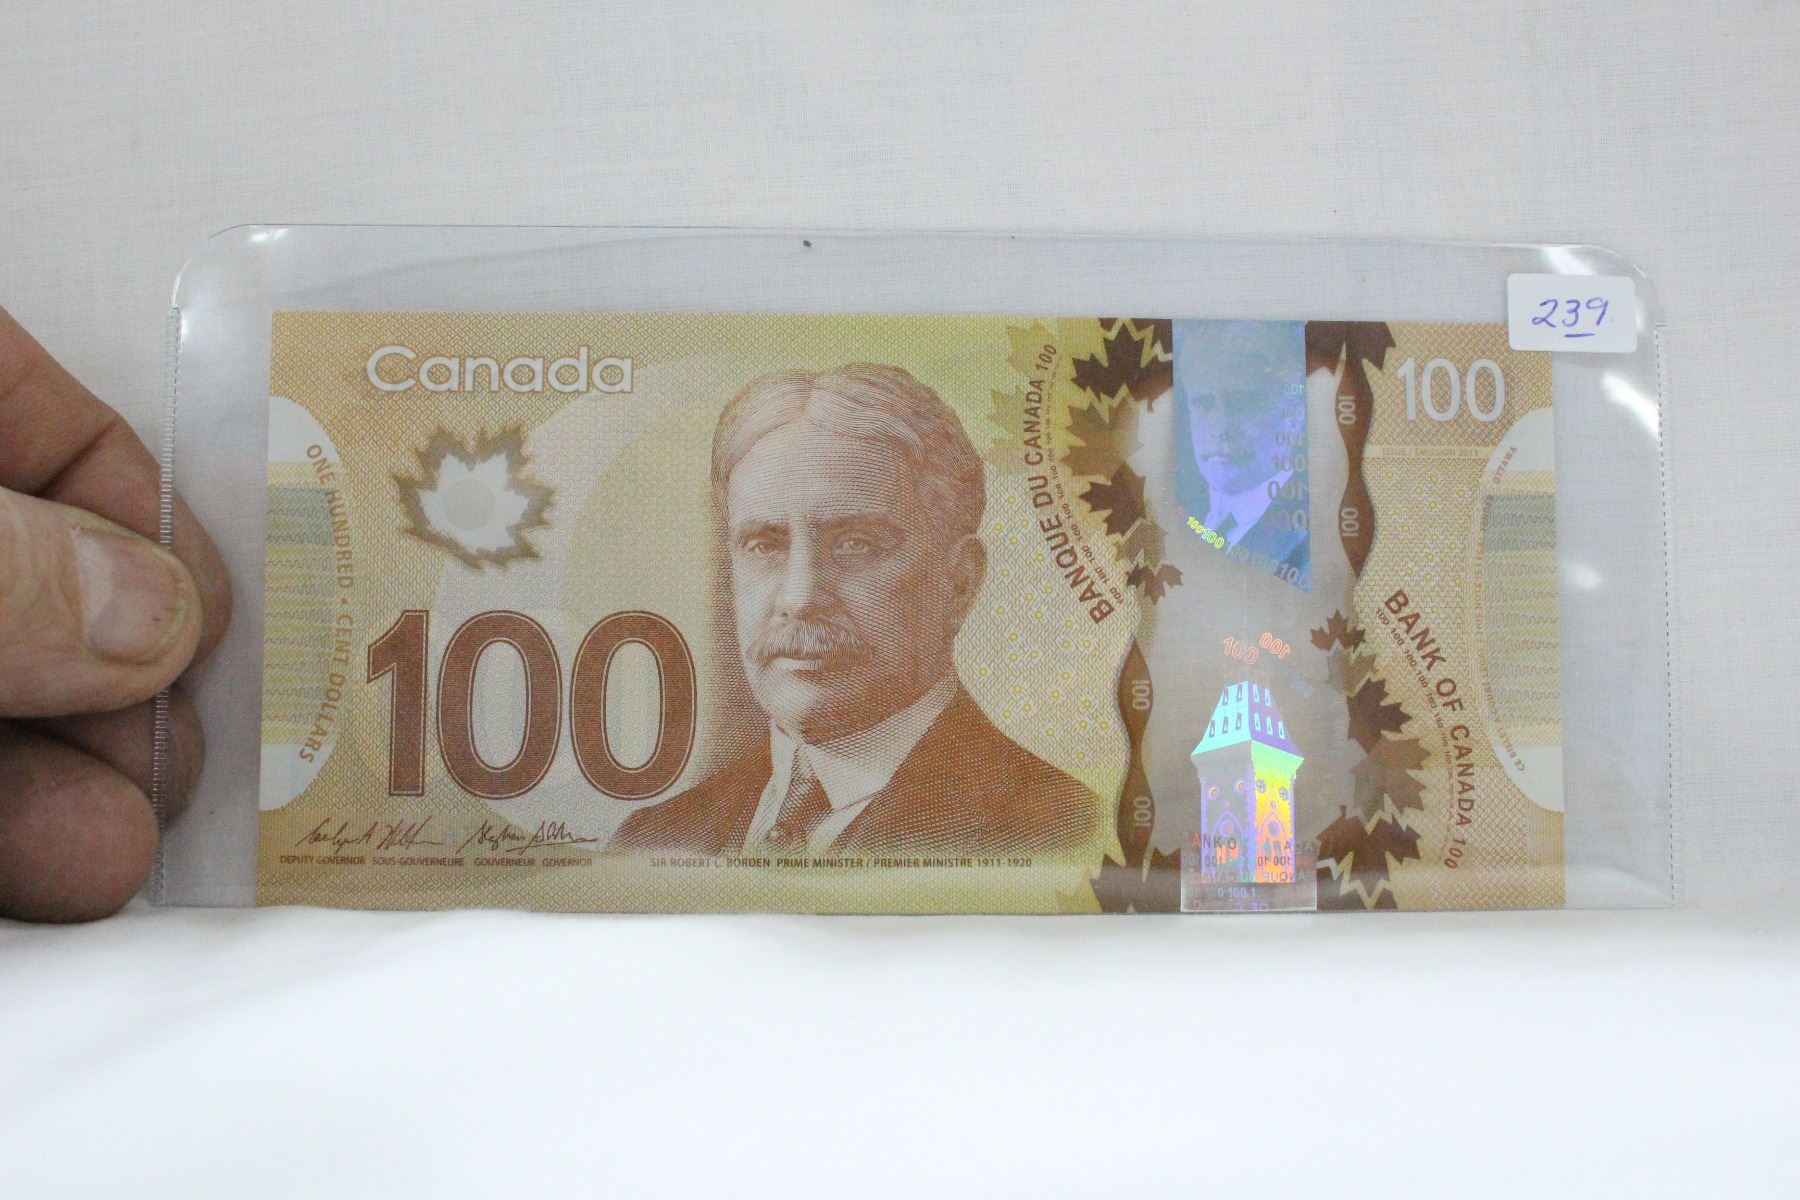 Canada One Hundred Dollar Bill - 2017 - Polymer